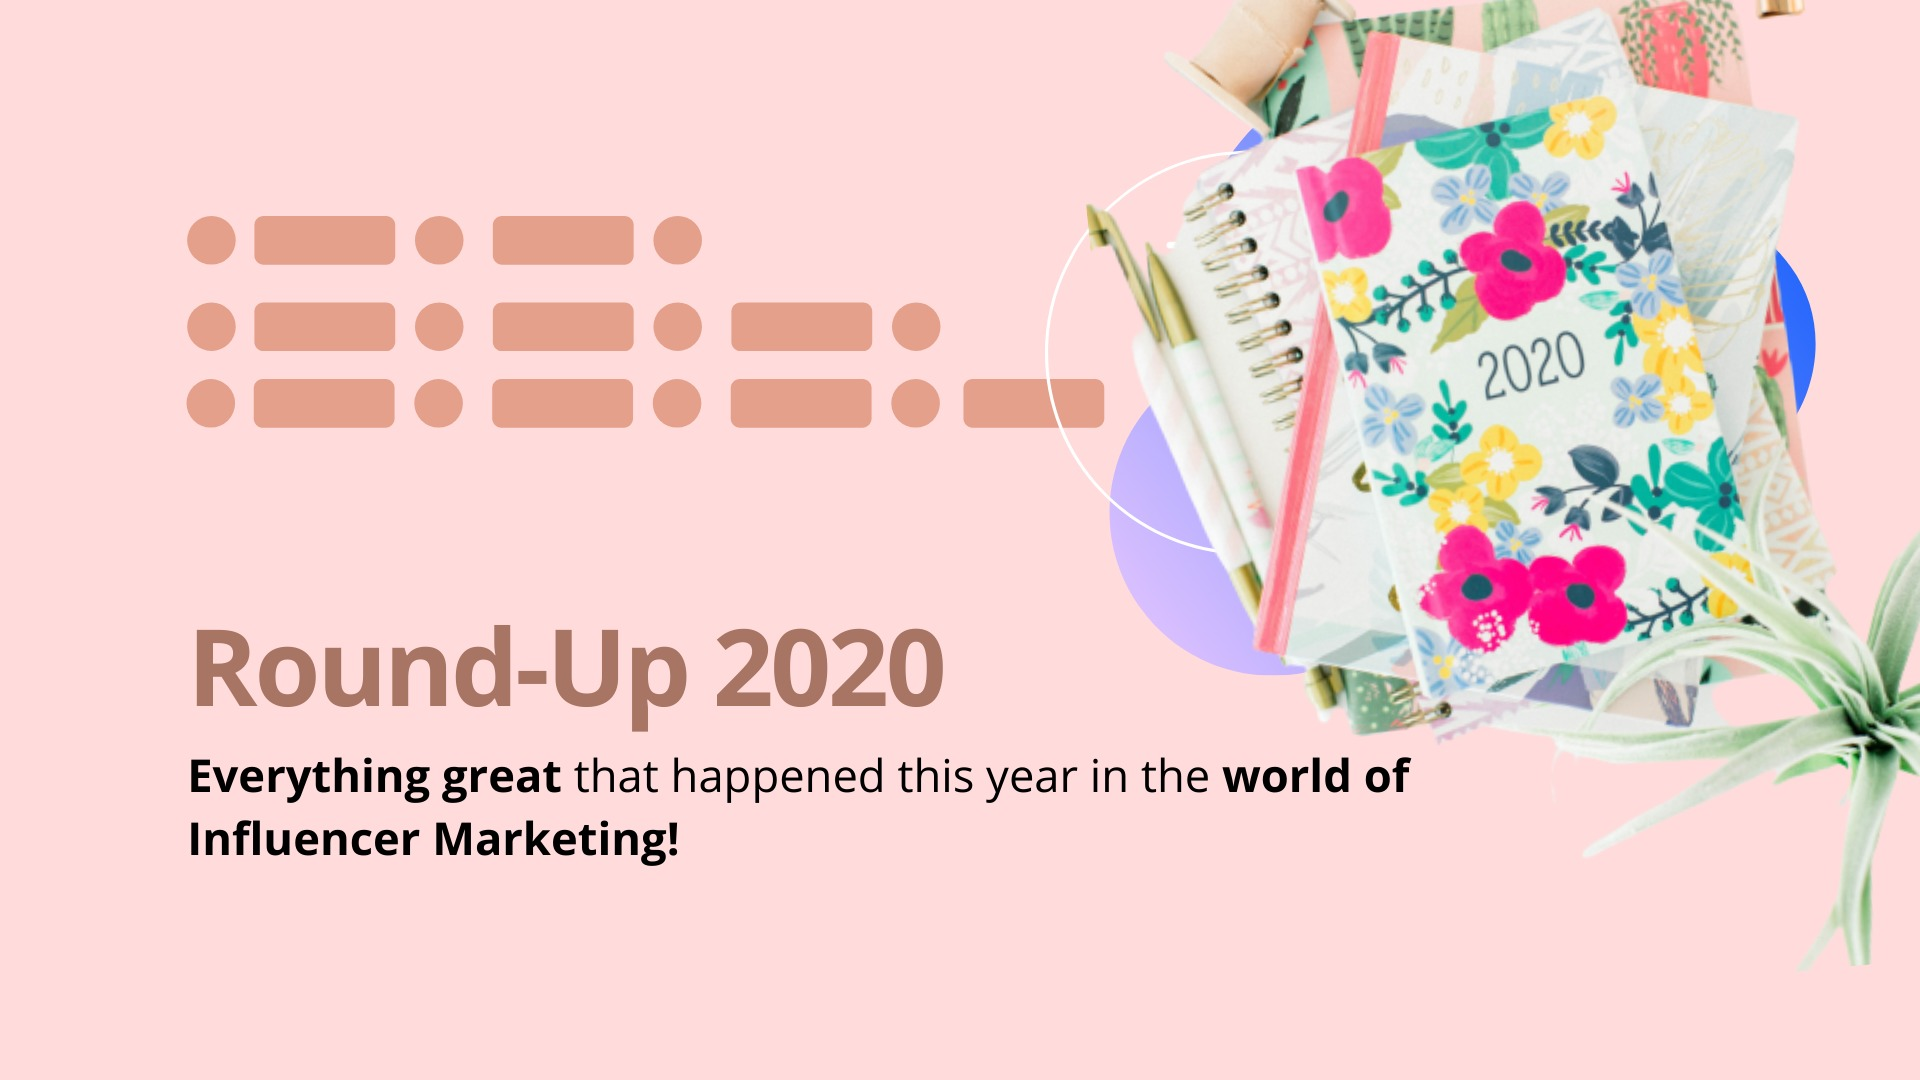 Influencer Marketing Round Roundup : 2020 image